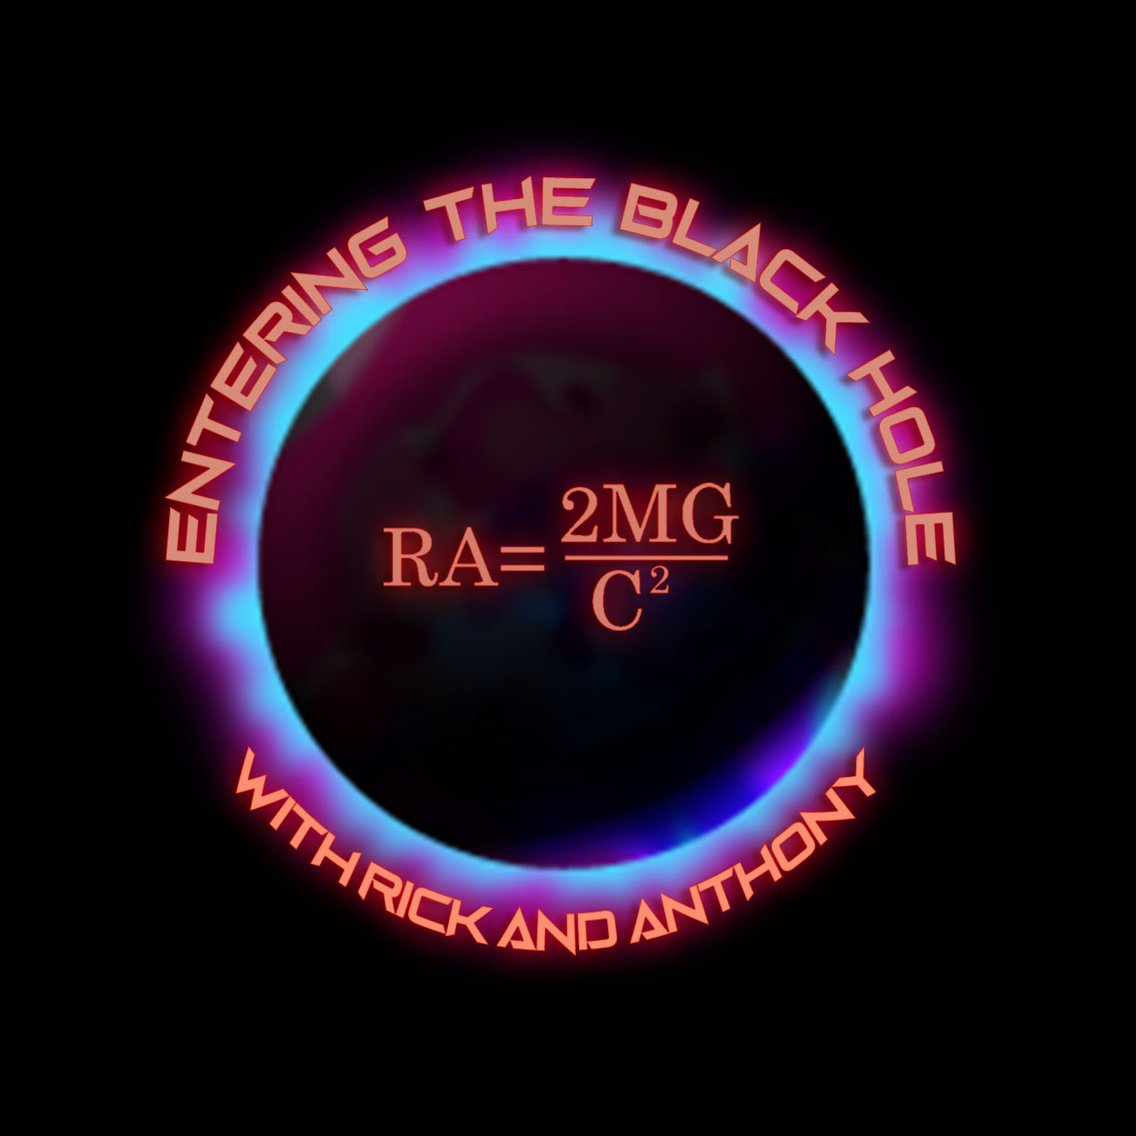 Entering the Black Hole with Rick & Ant - Cover Image